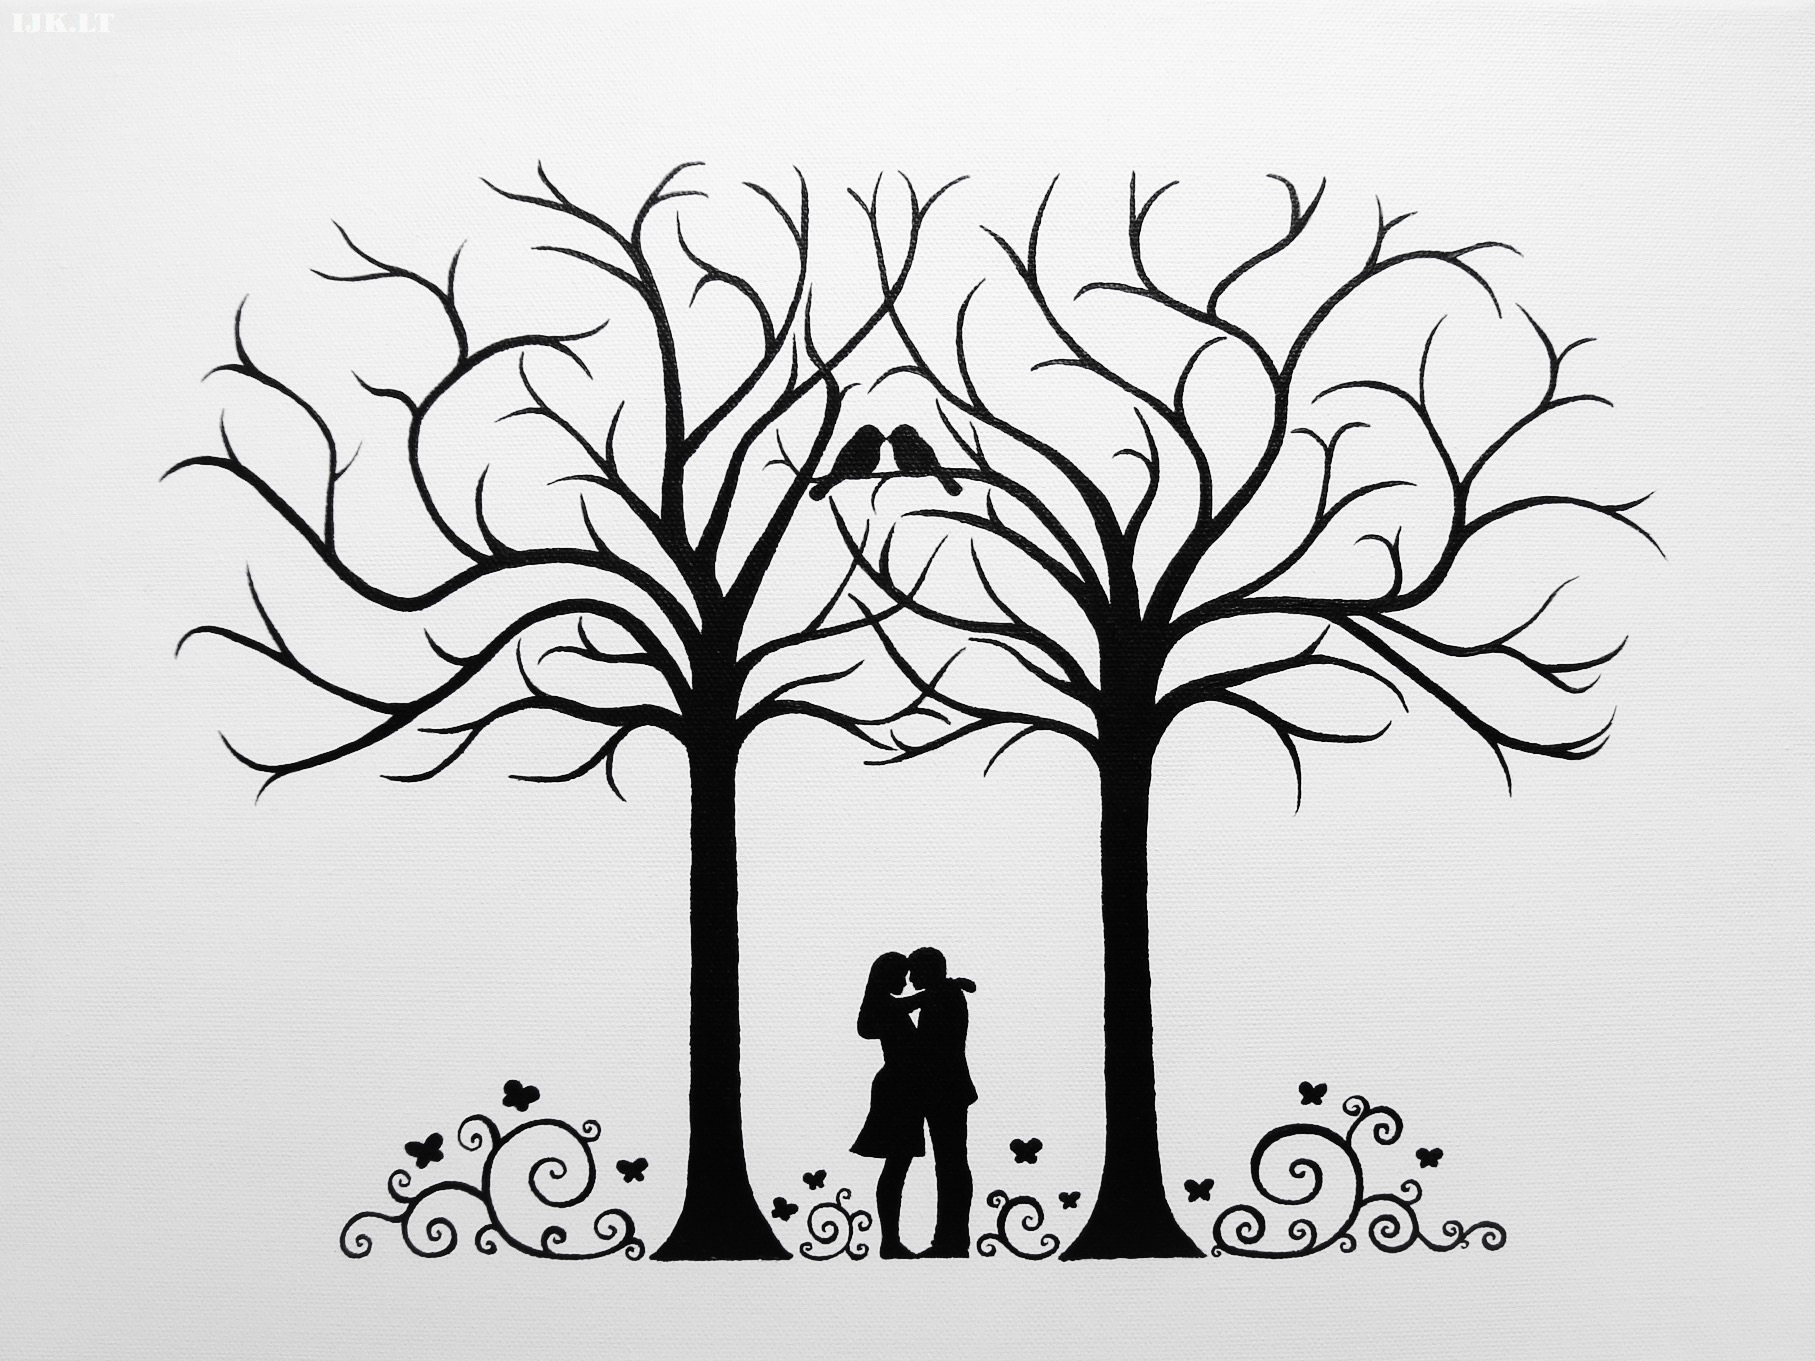 ... fingerprints and wishes, wedding trees, two trees, couple, birds